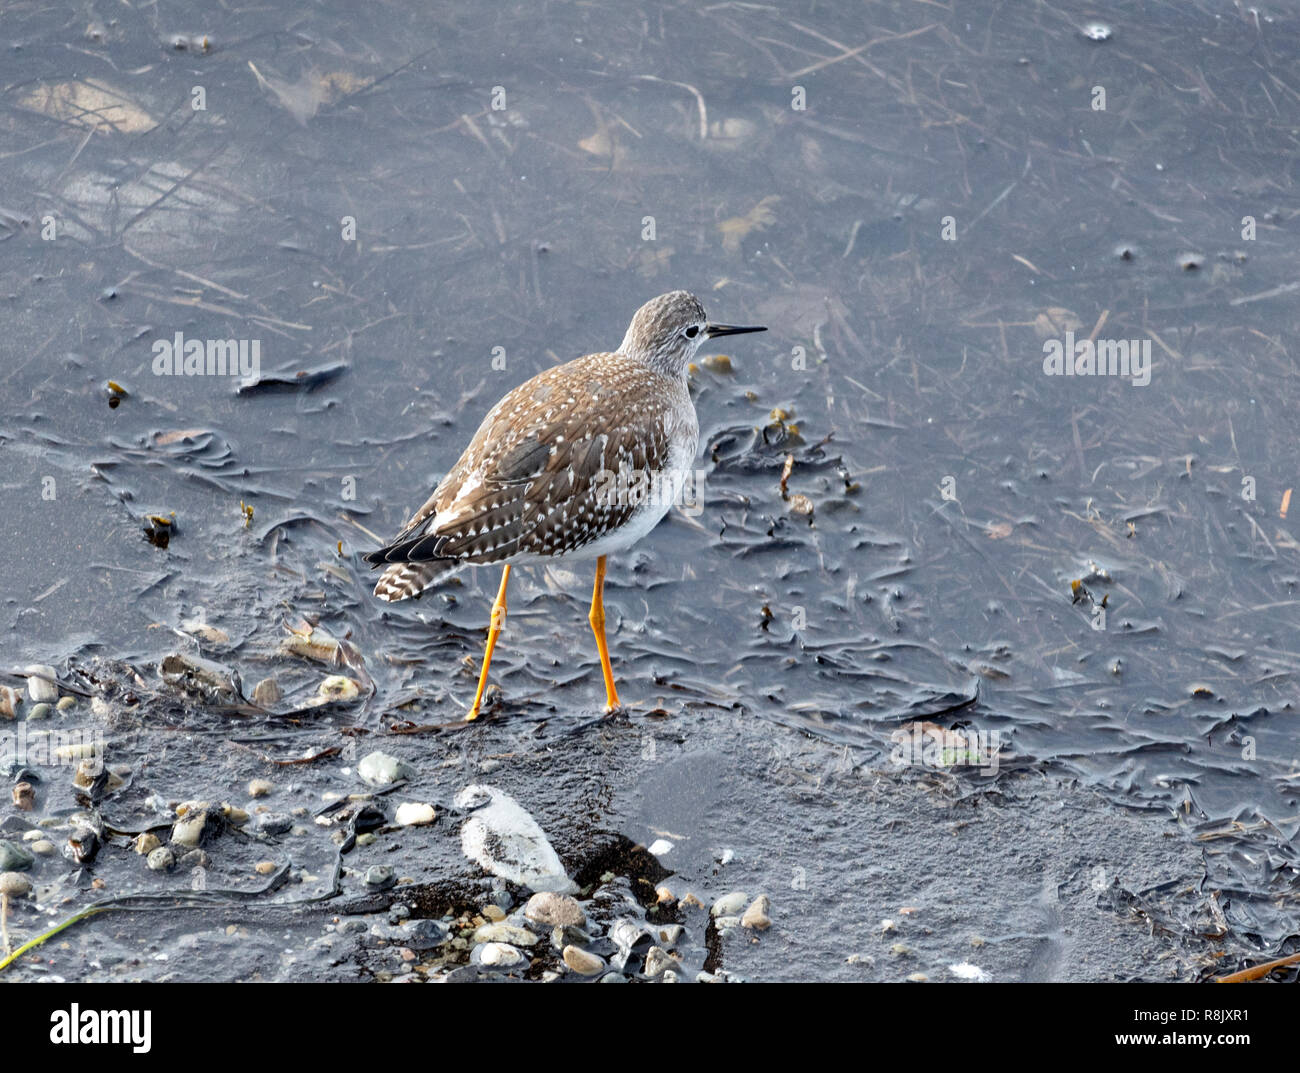 a sandpiper alone on the beach in Rimouski - Stock Image